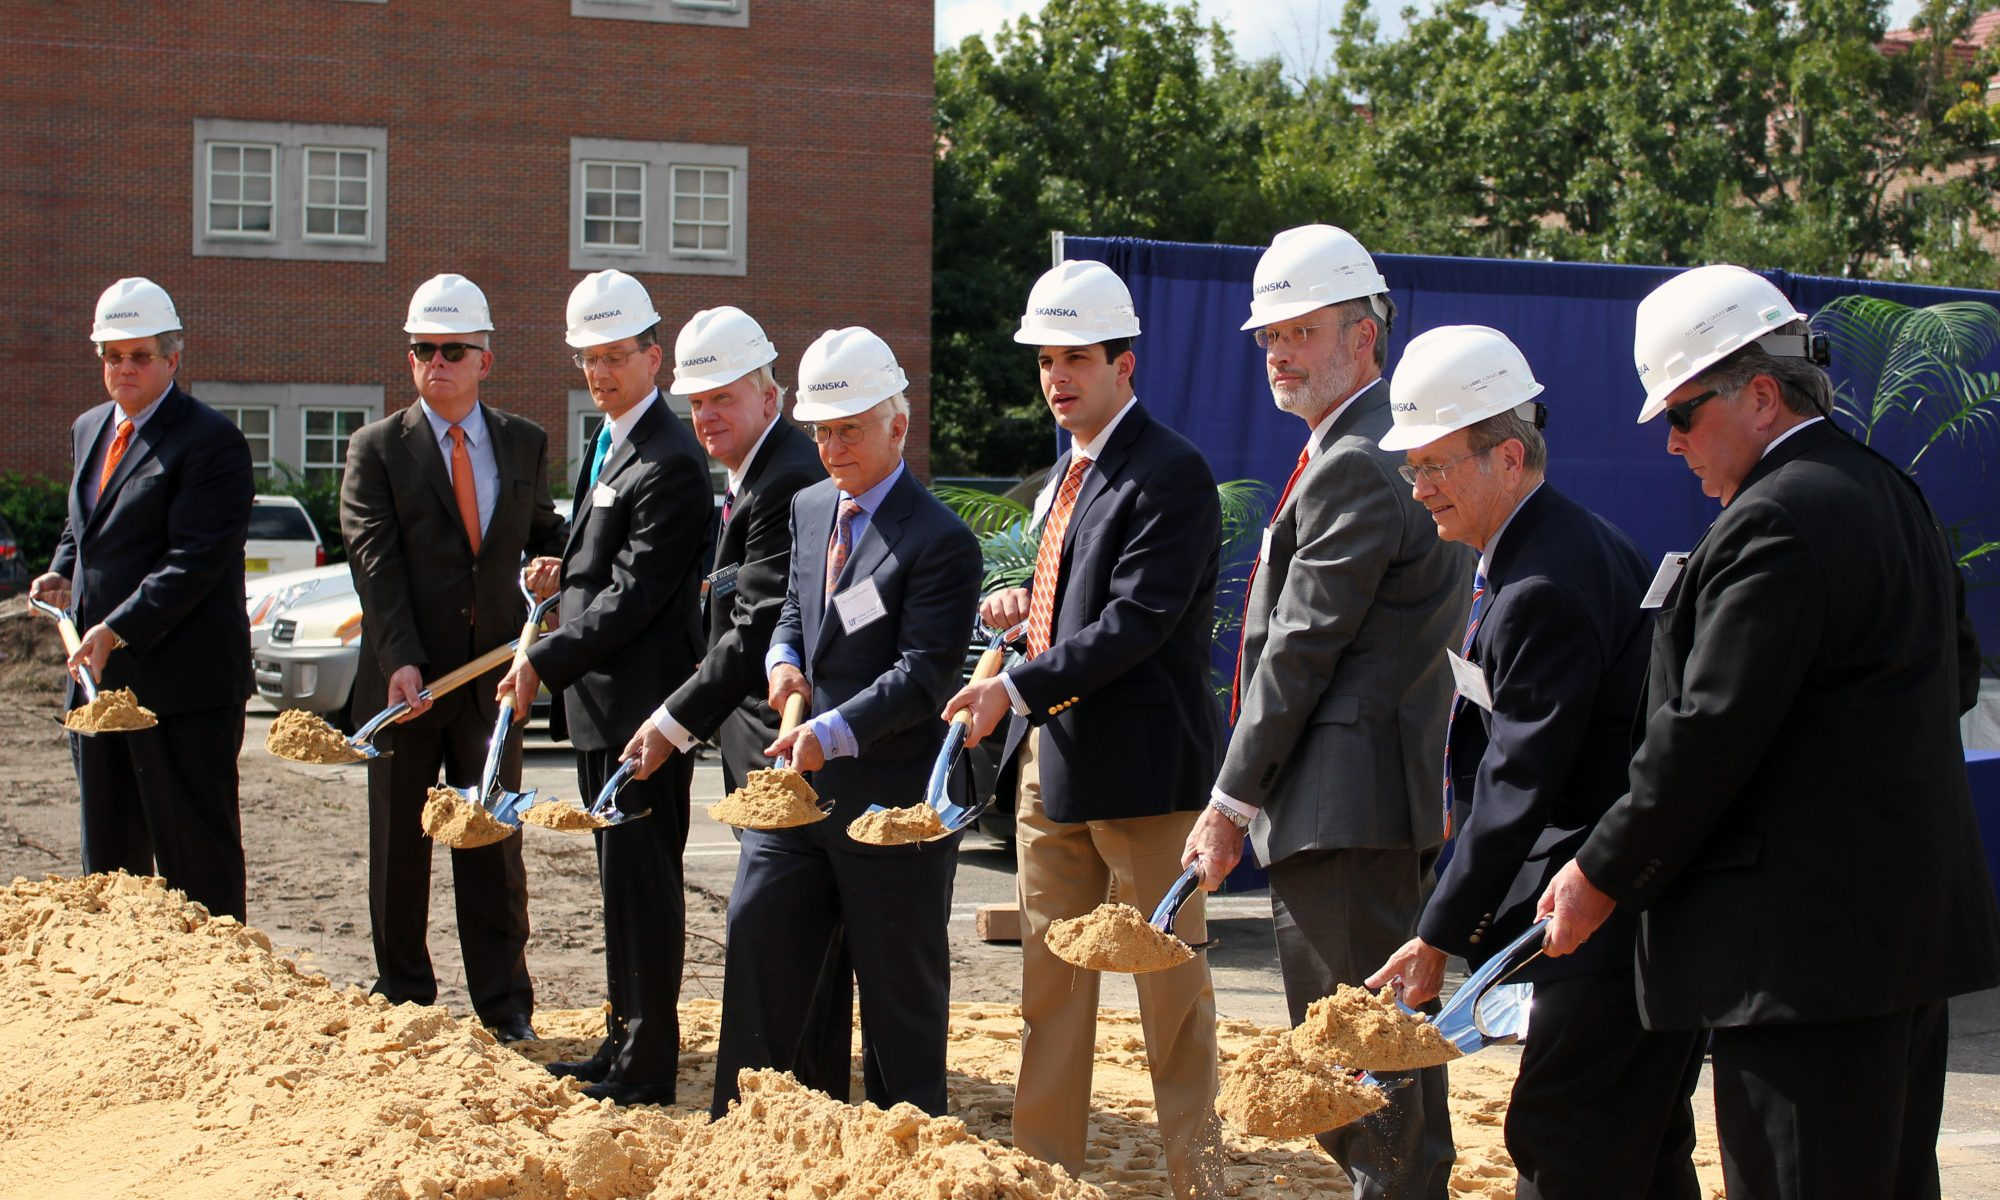 A group of men hold shovels at the ceremonial groundbreaking